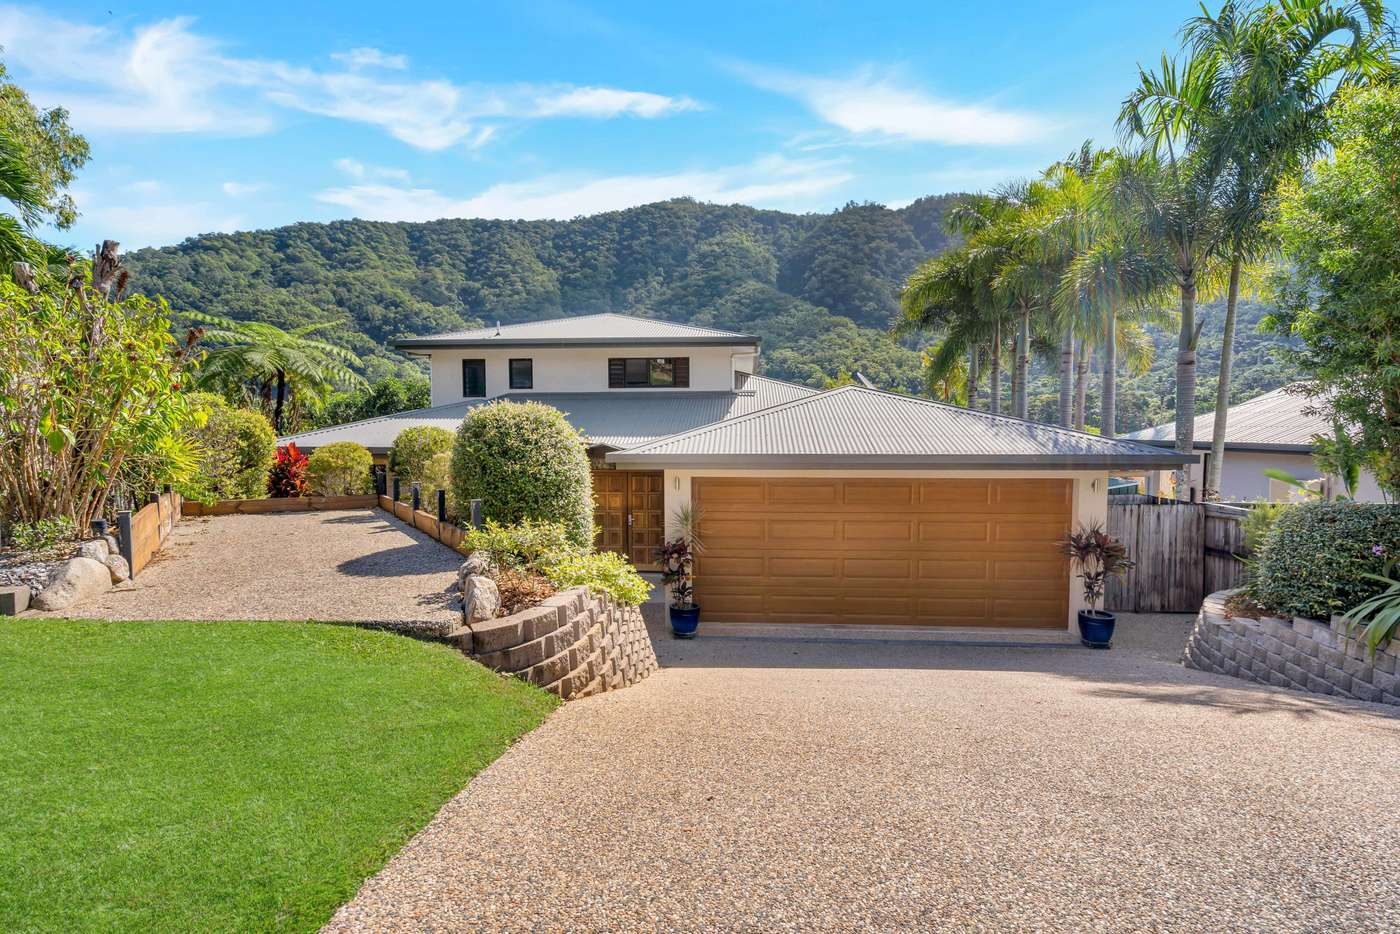 Main view of Homely house listing, 5 Ellie Banning Close, Redlynch QLD 4870